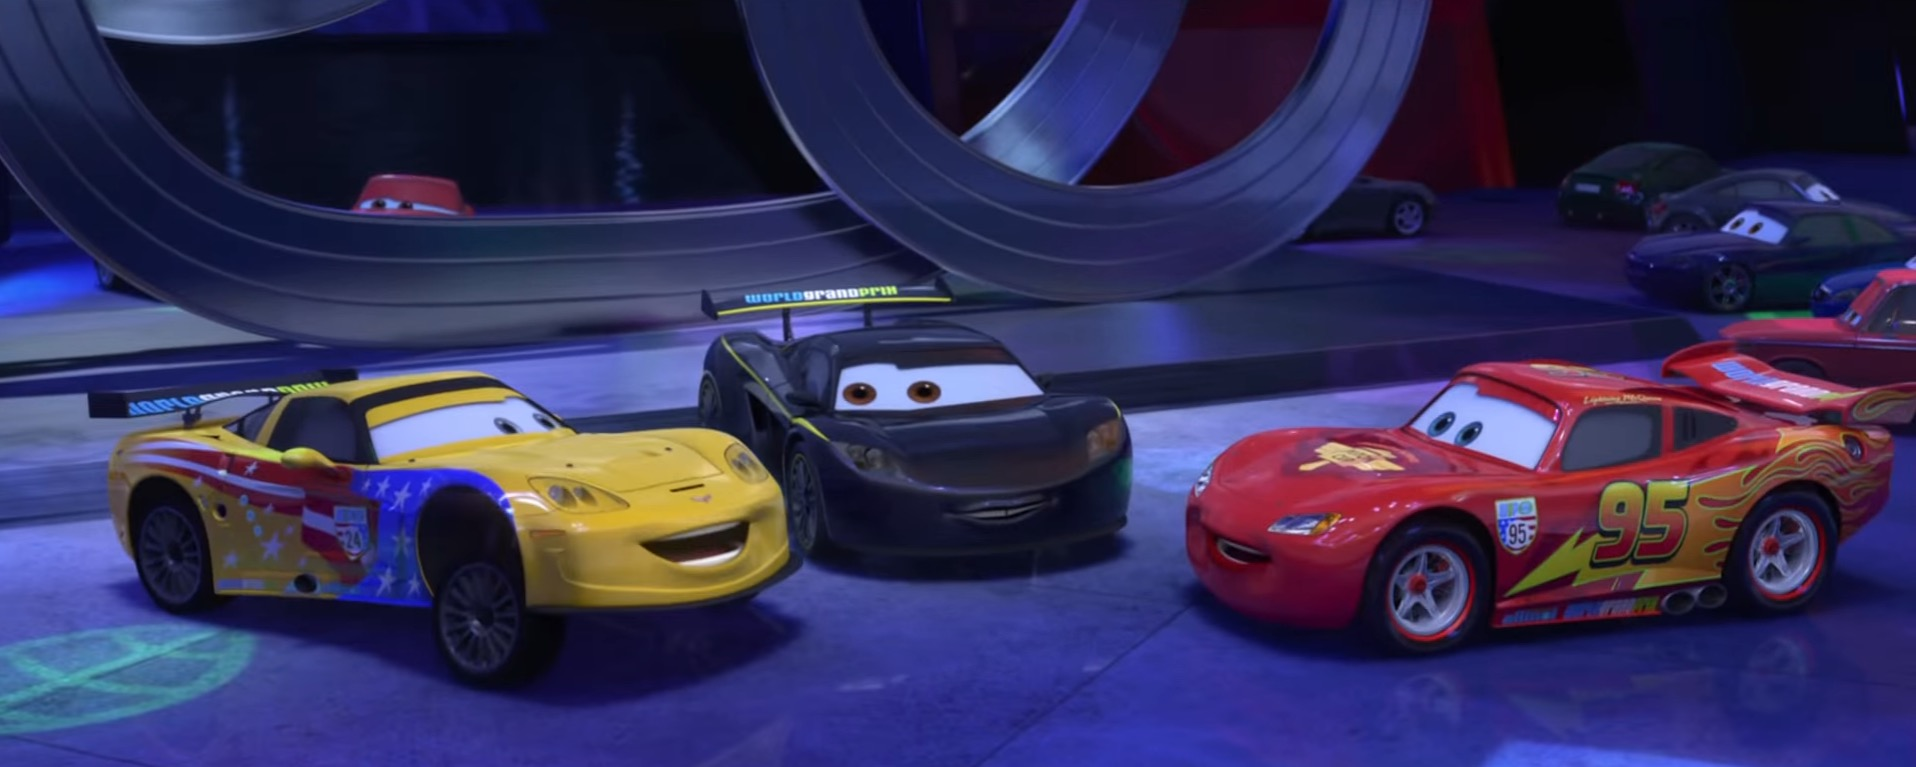 lewis hamilton will be a voice in cars 3 autoevolution. Black Bedroom Furniture Sets. Home Design Ideas